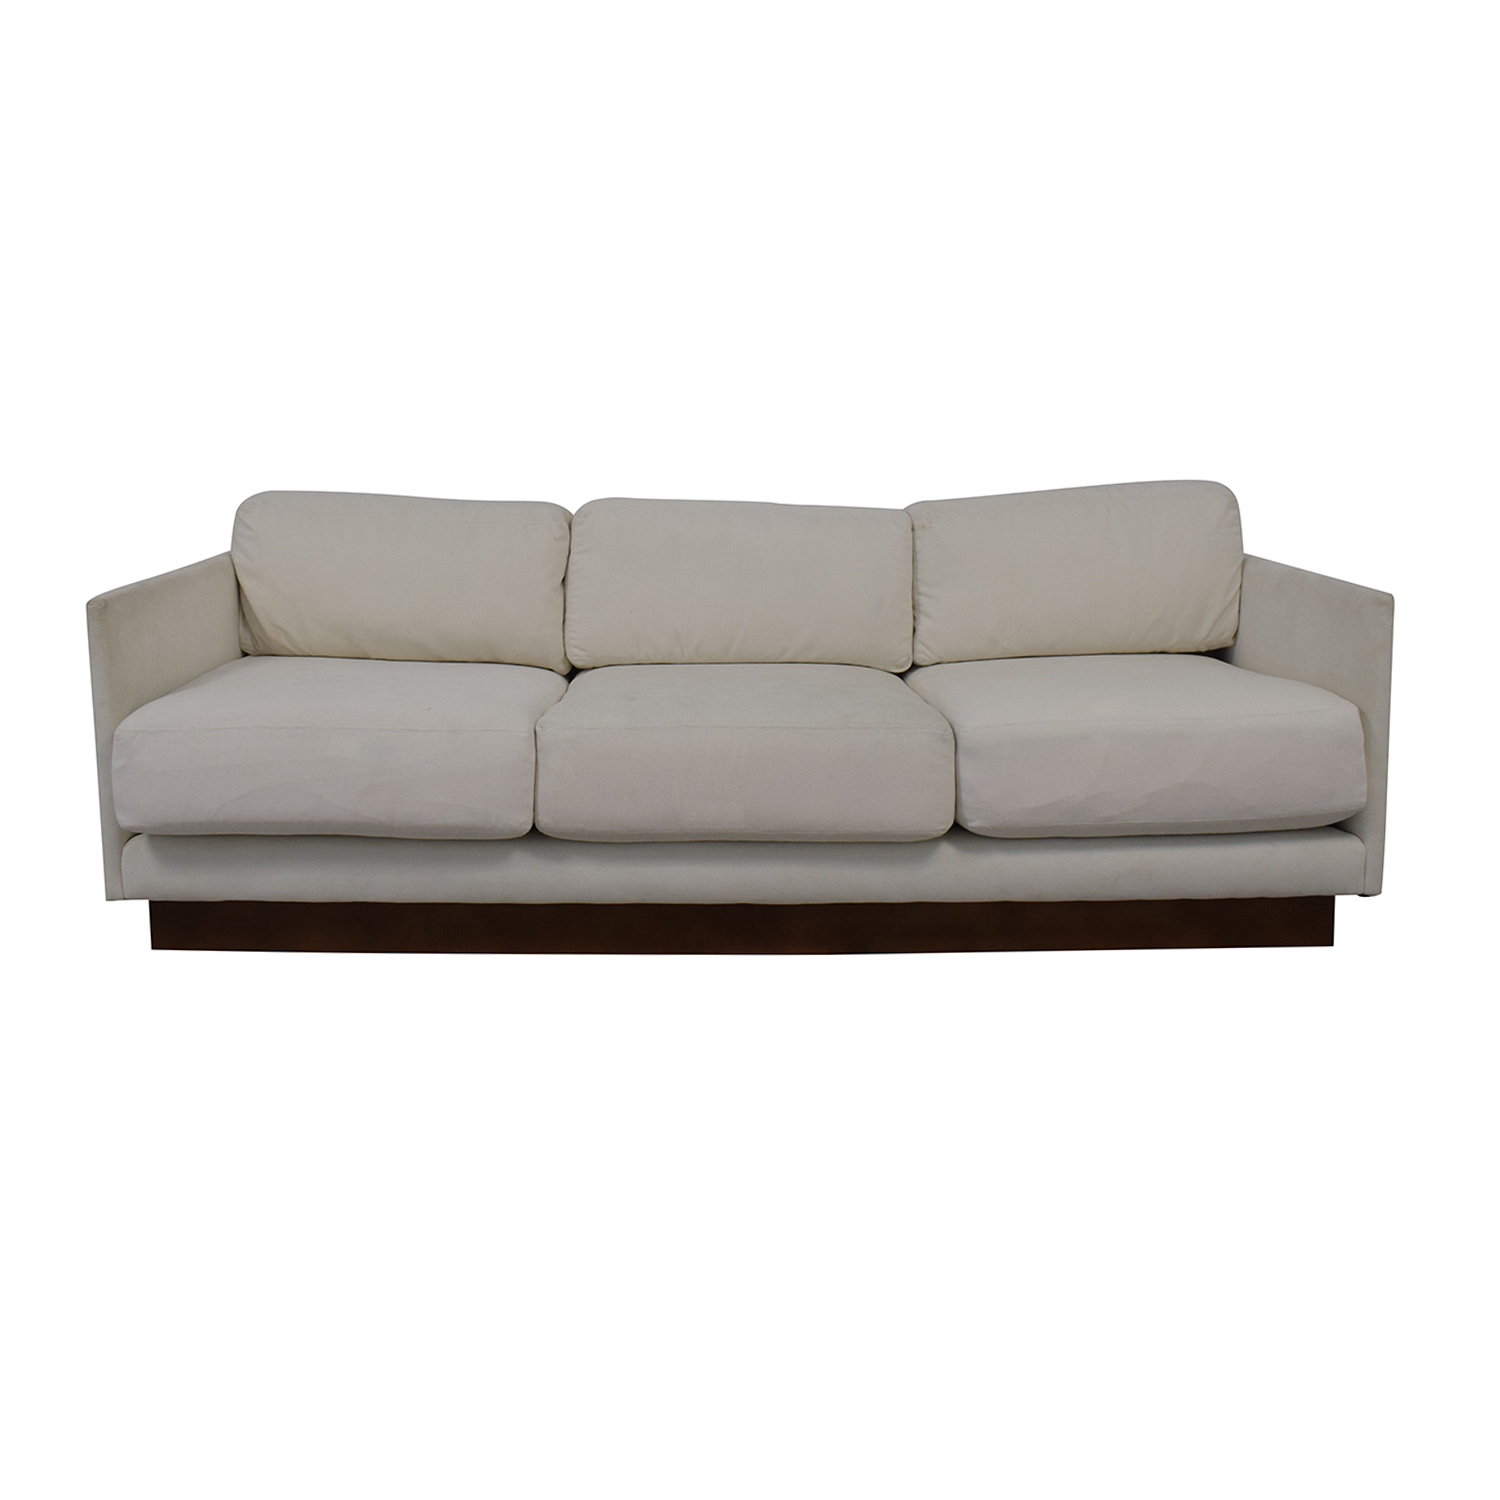 Mitchell Gold + Bob Williams Mitchell Gold + Bob Williams White Three-Cushion Sofa dimensions